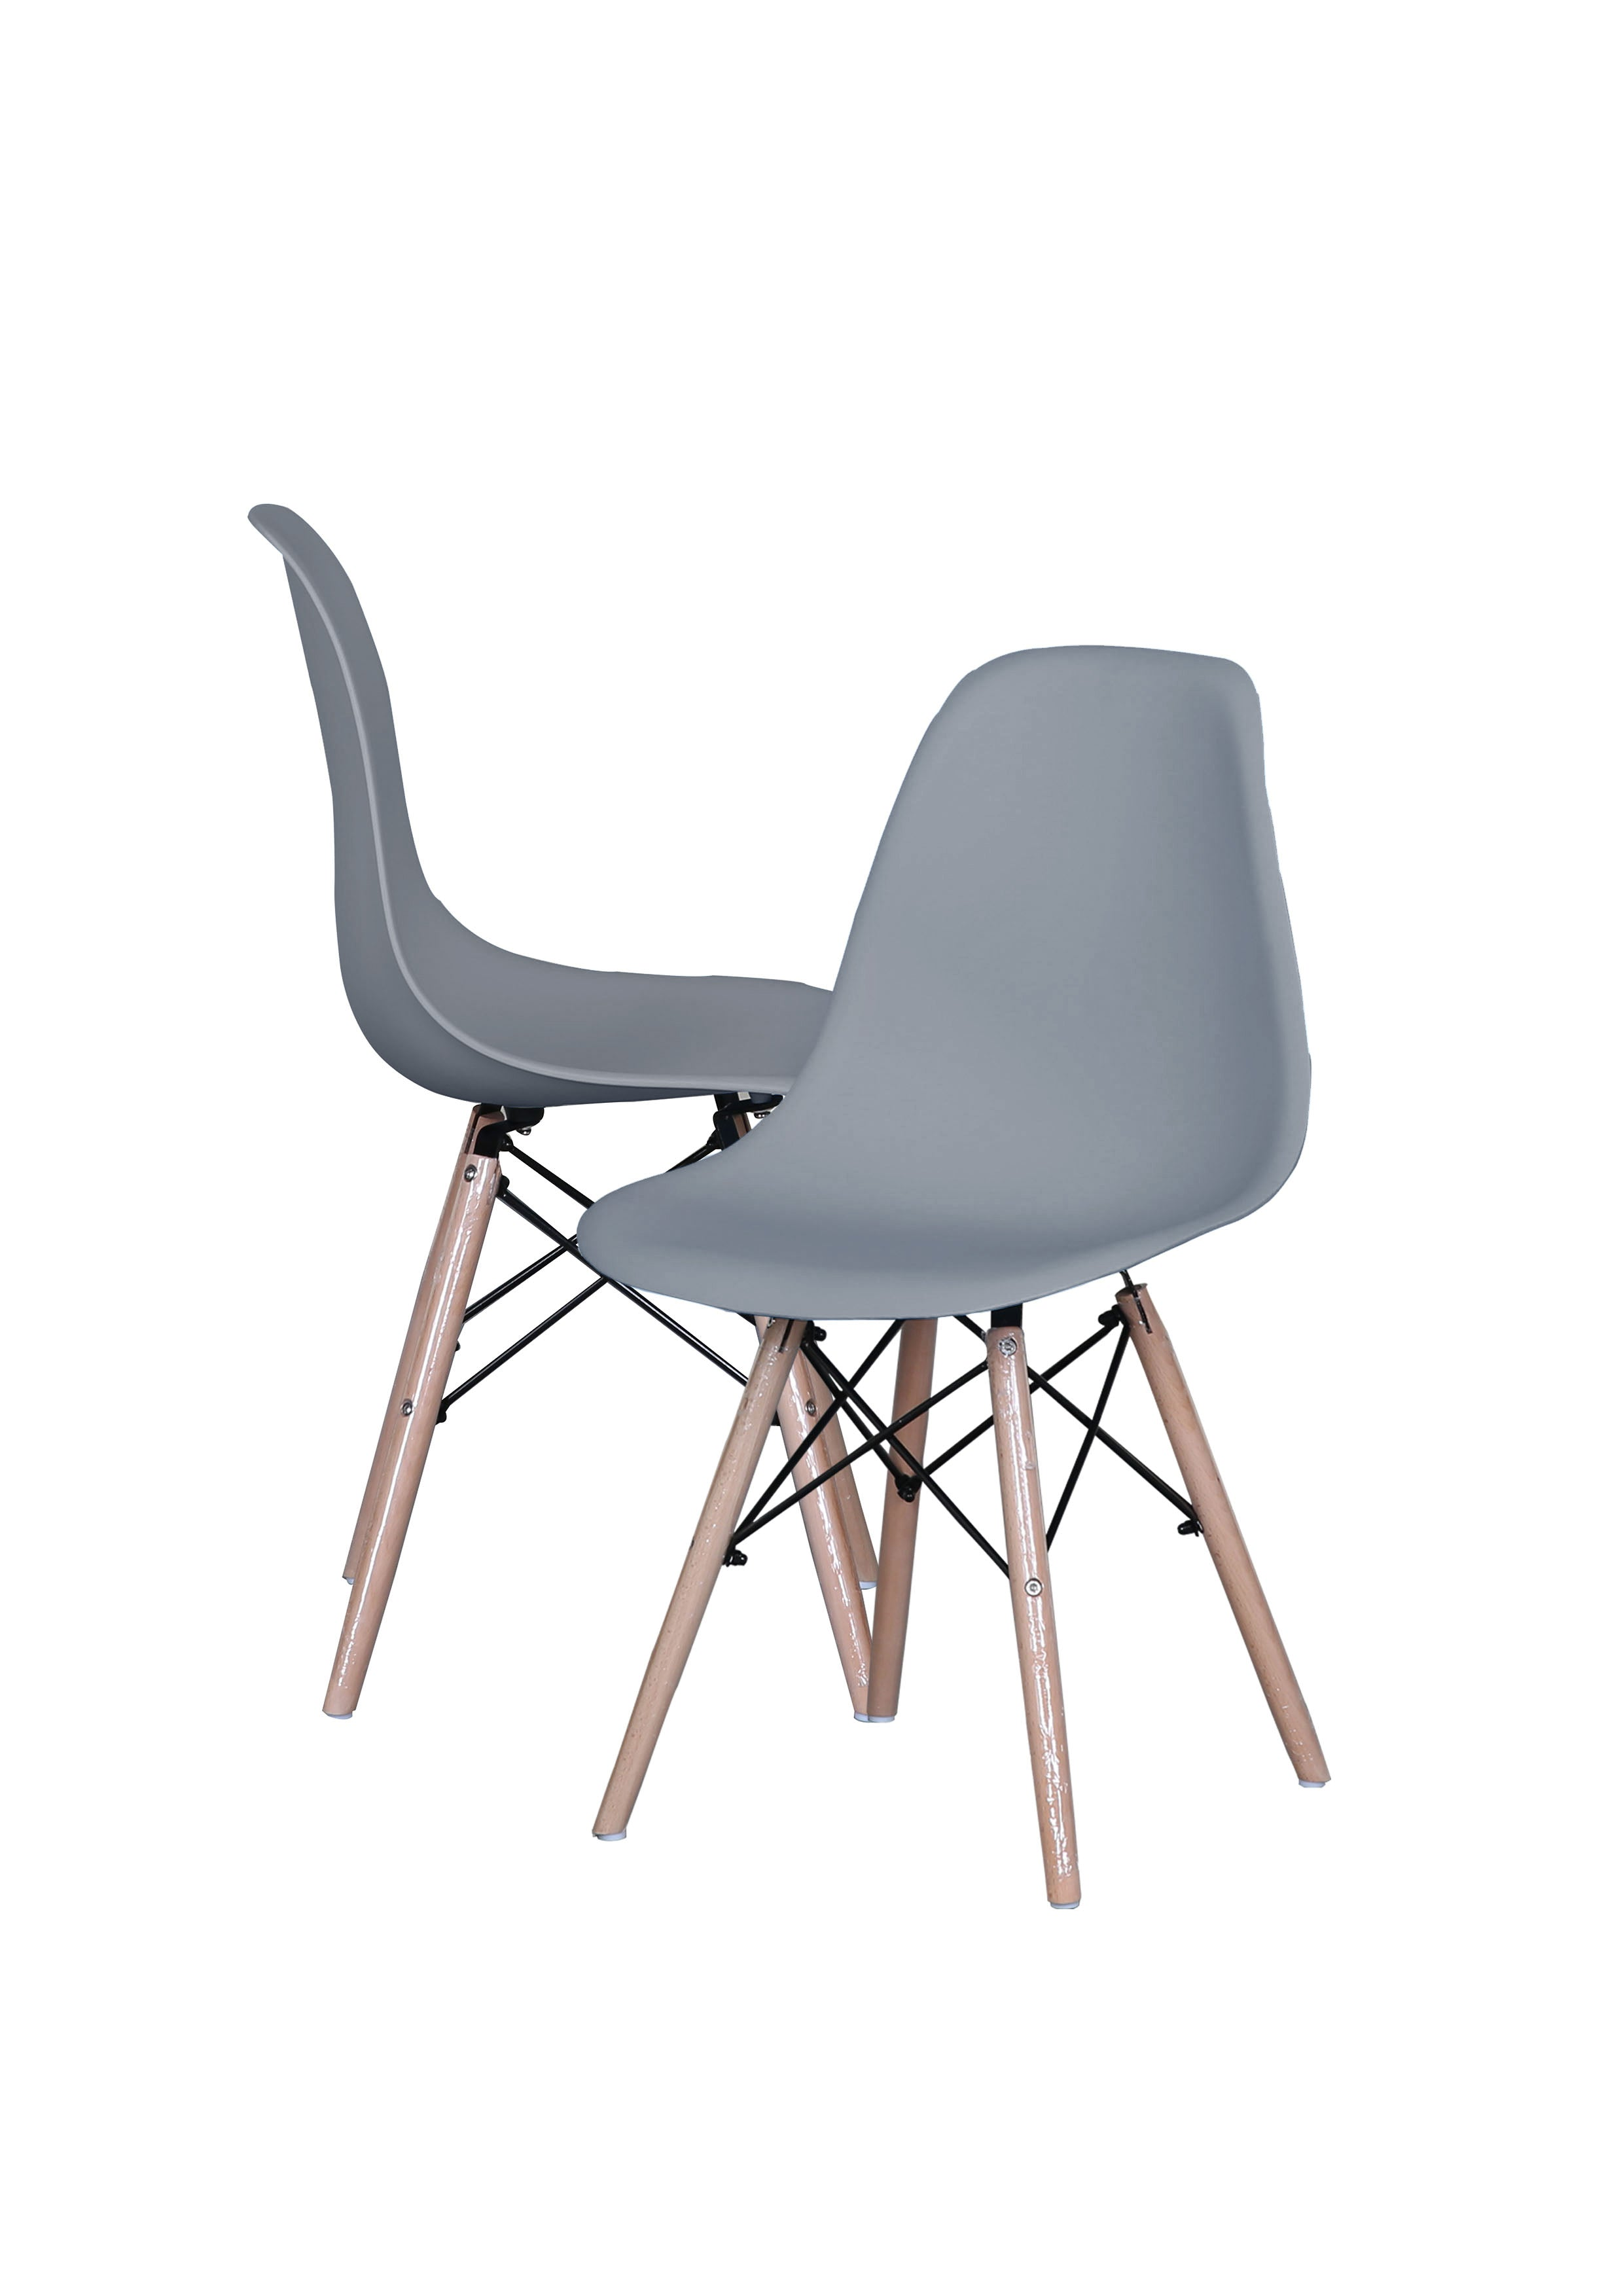 Ray set of 2 classic modern eames inspired chairs